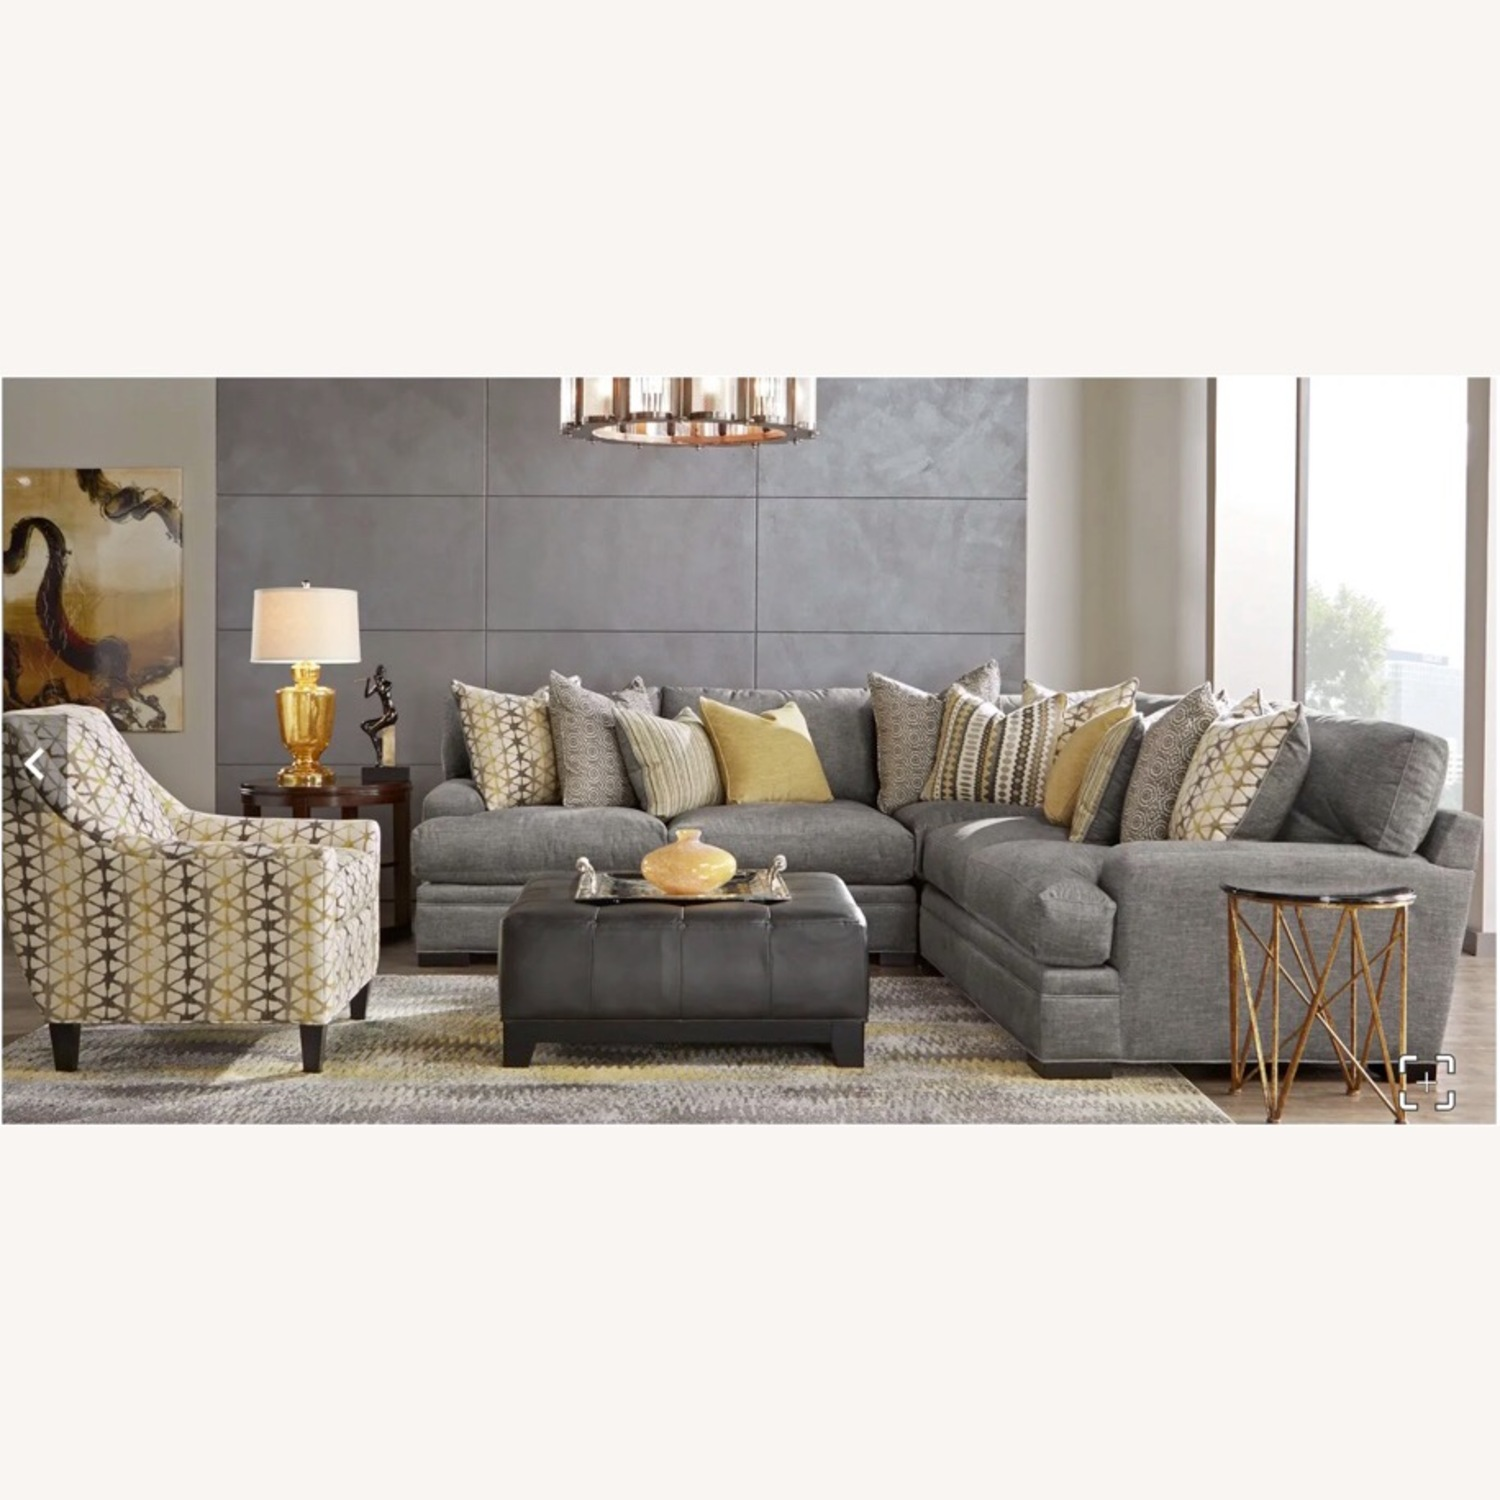 Rooms To Go Gray 3 Piece Sectional Cindy Crawford Home - image-1